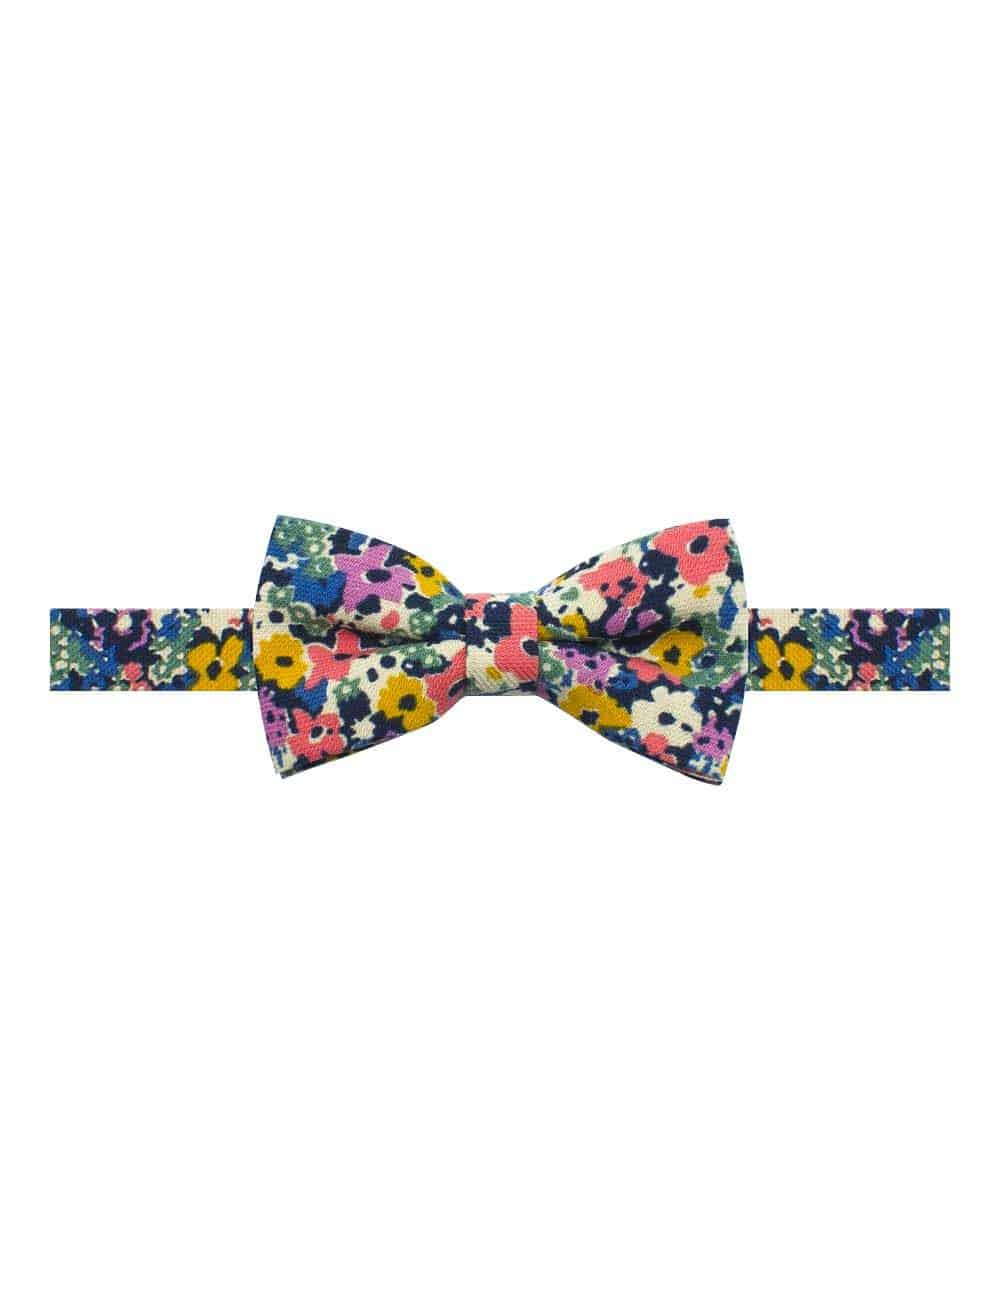 Ecru with Yellow and Pink Floral Print Woven Bowtie WBT34.8